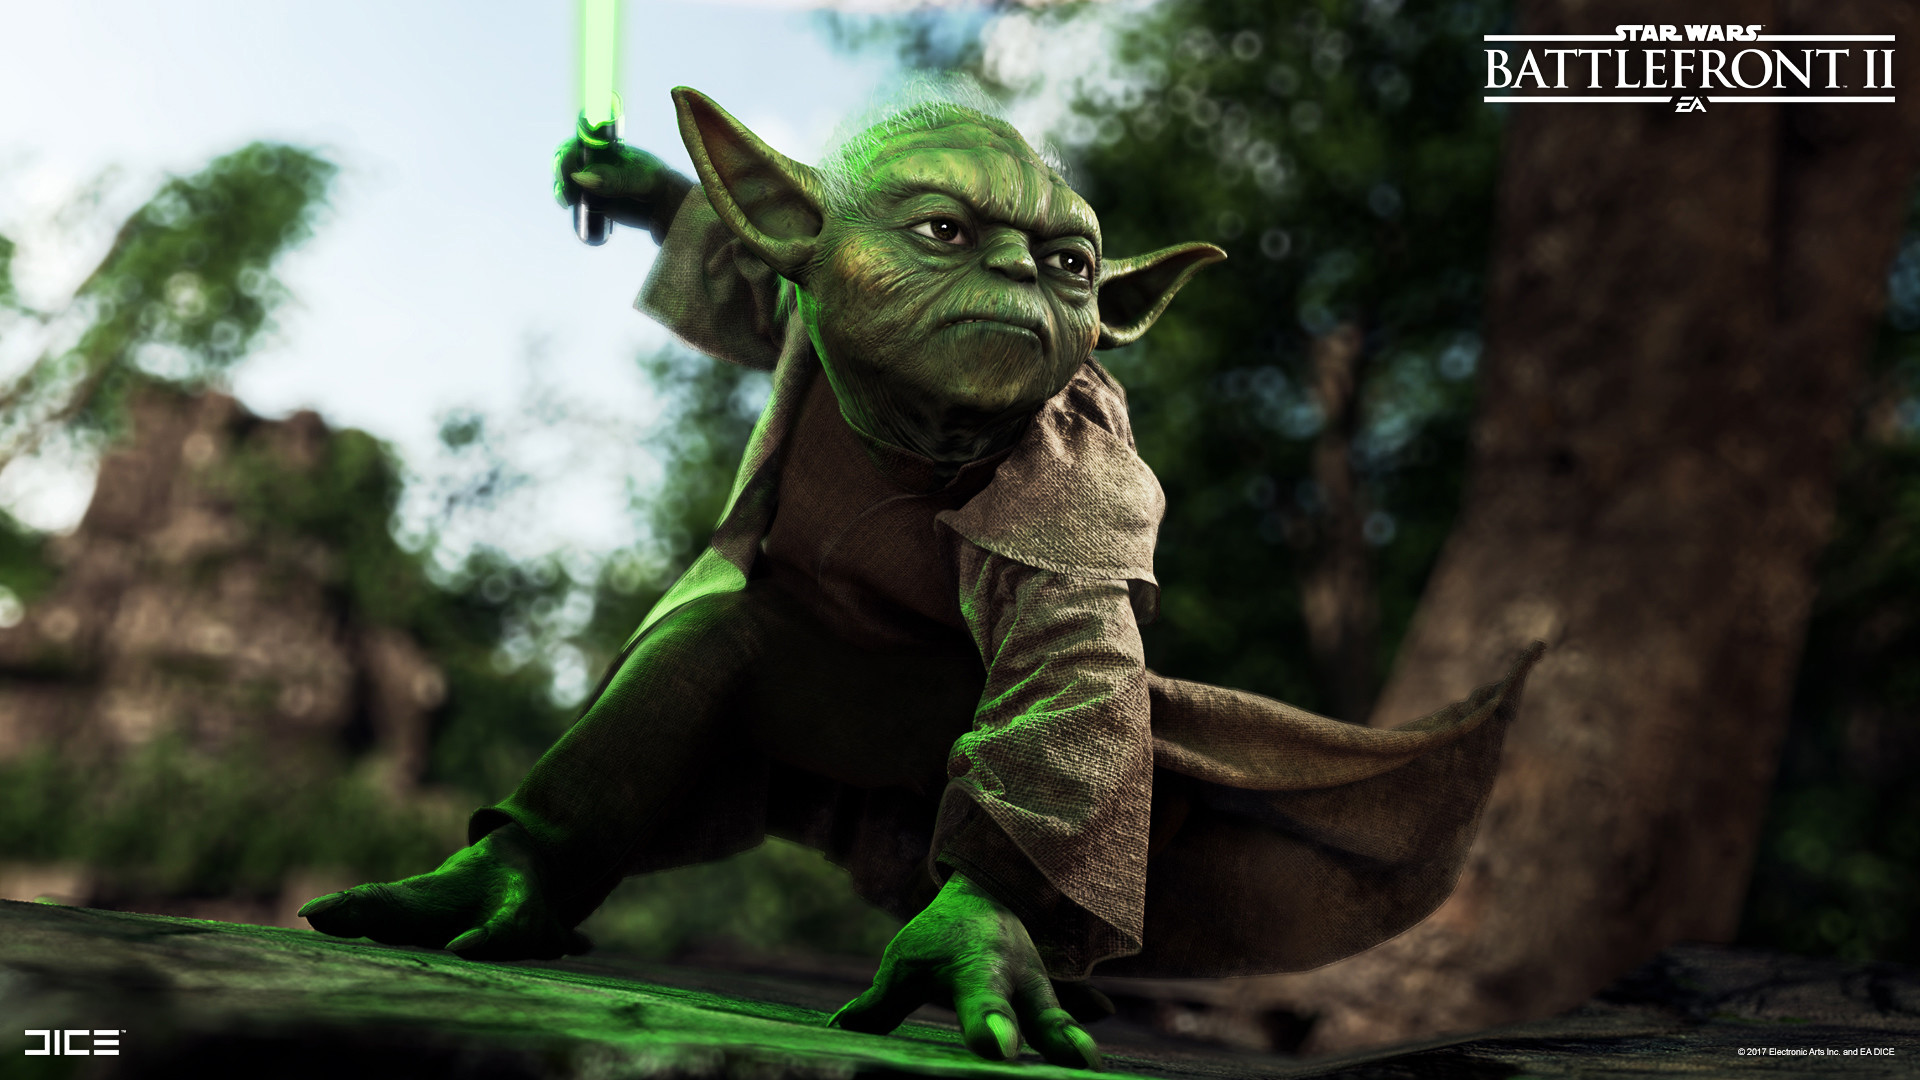 Yoda in Star Wars Battlefront 2: best cards and tips